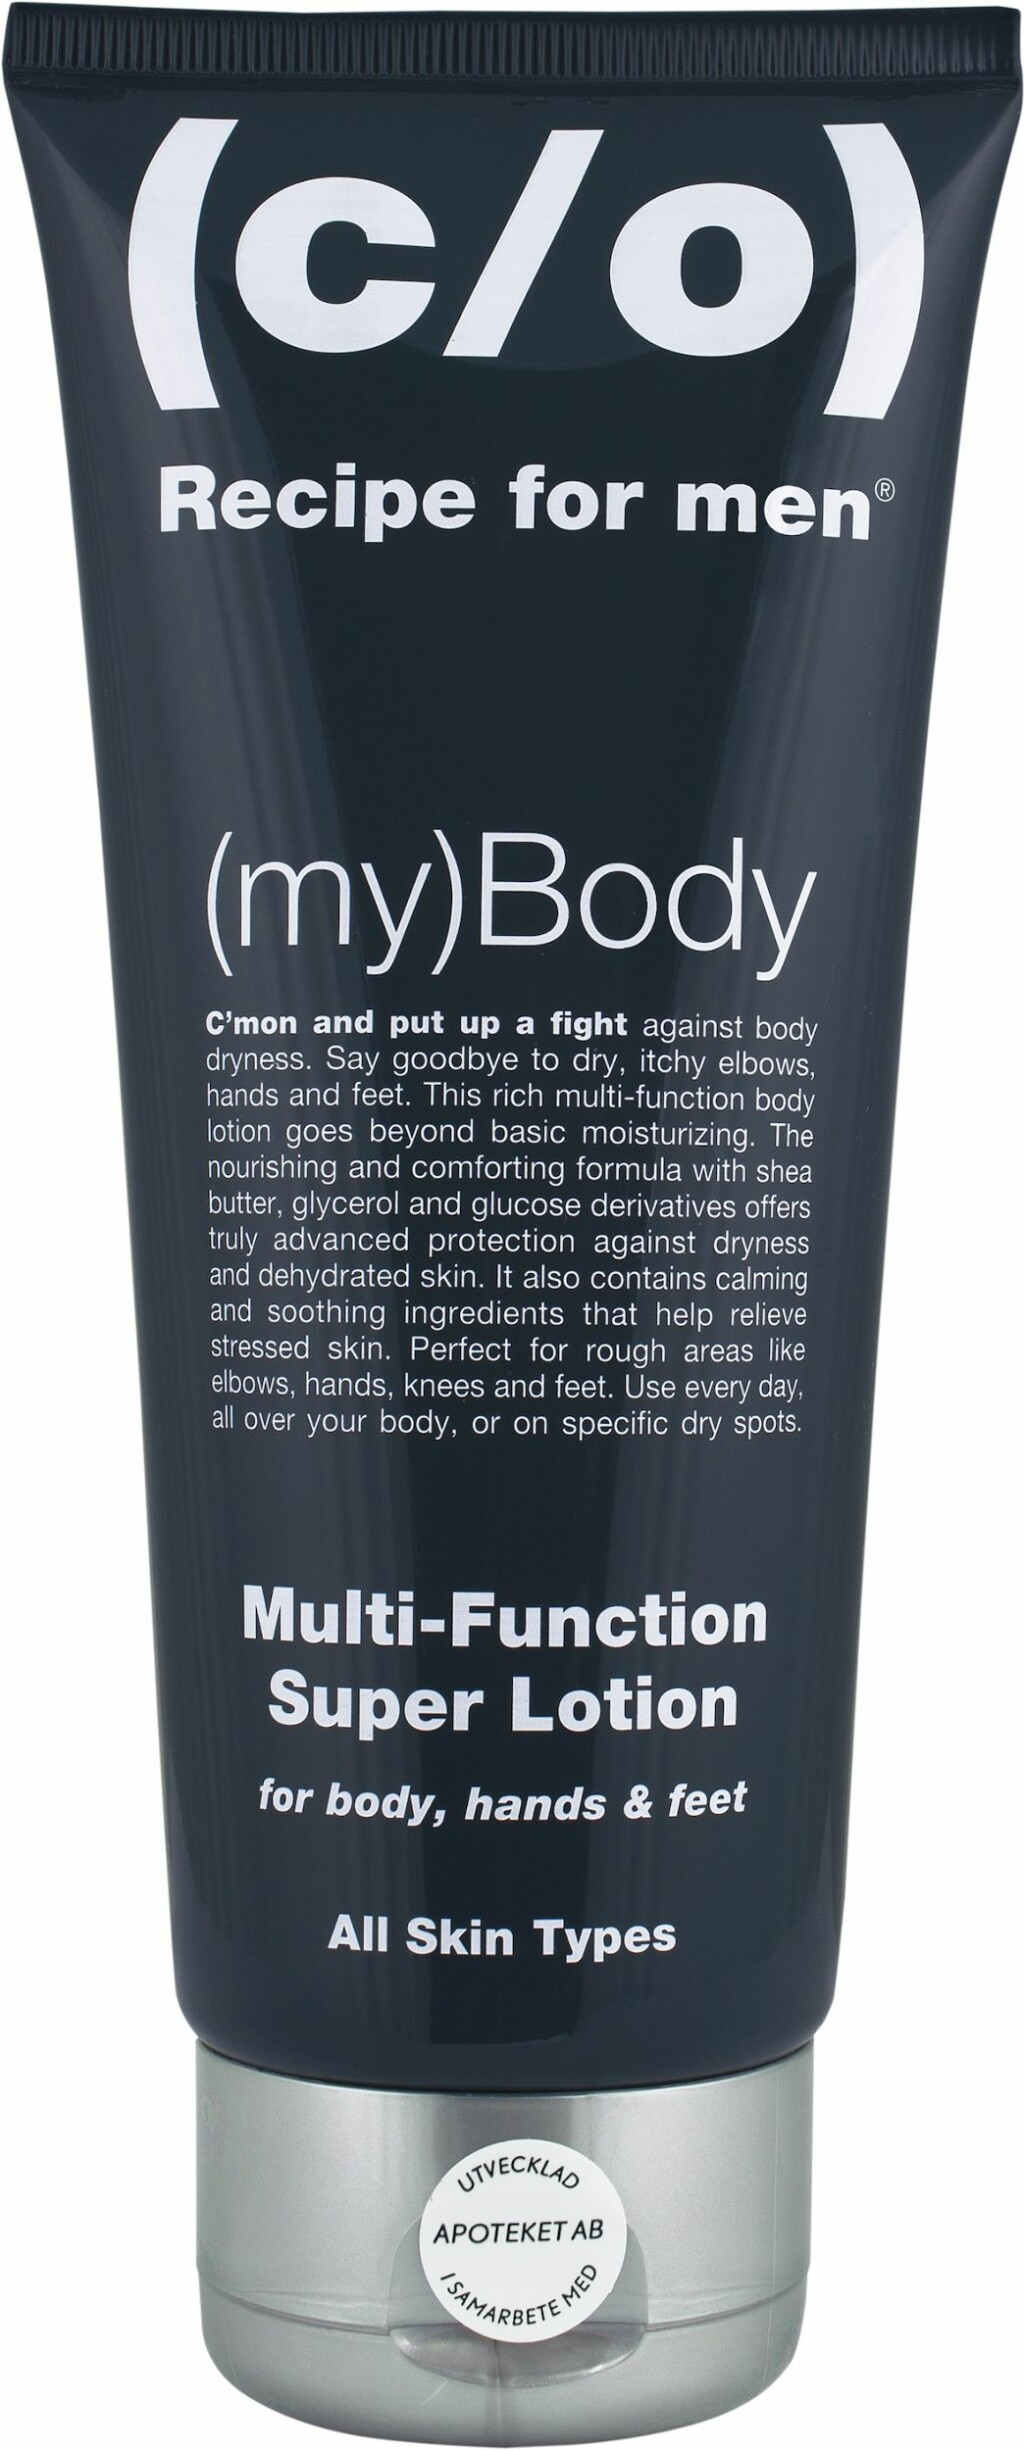 Body Lotion fra c/o Recipe for men, kr 119.